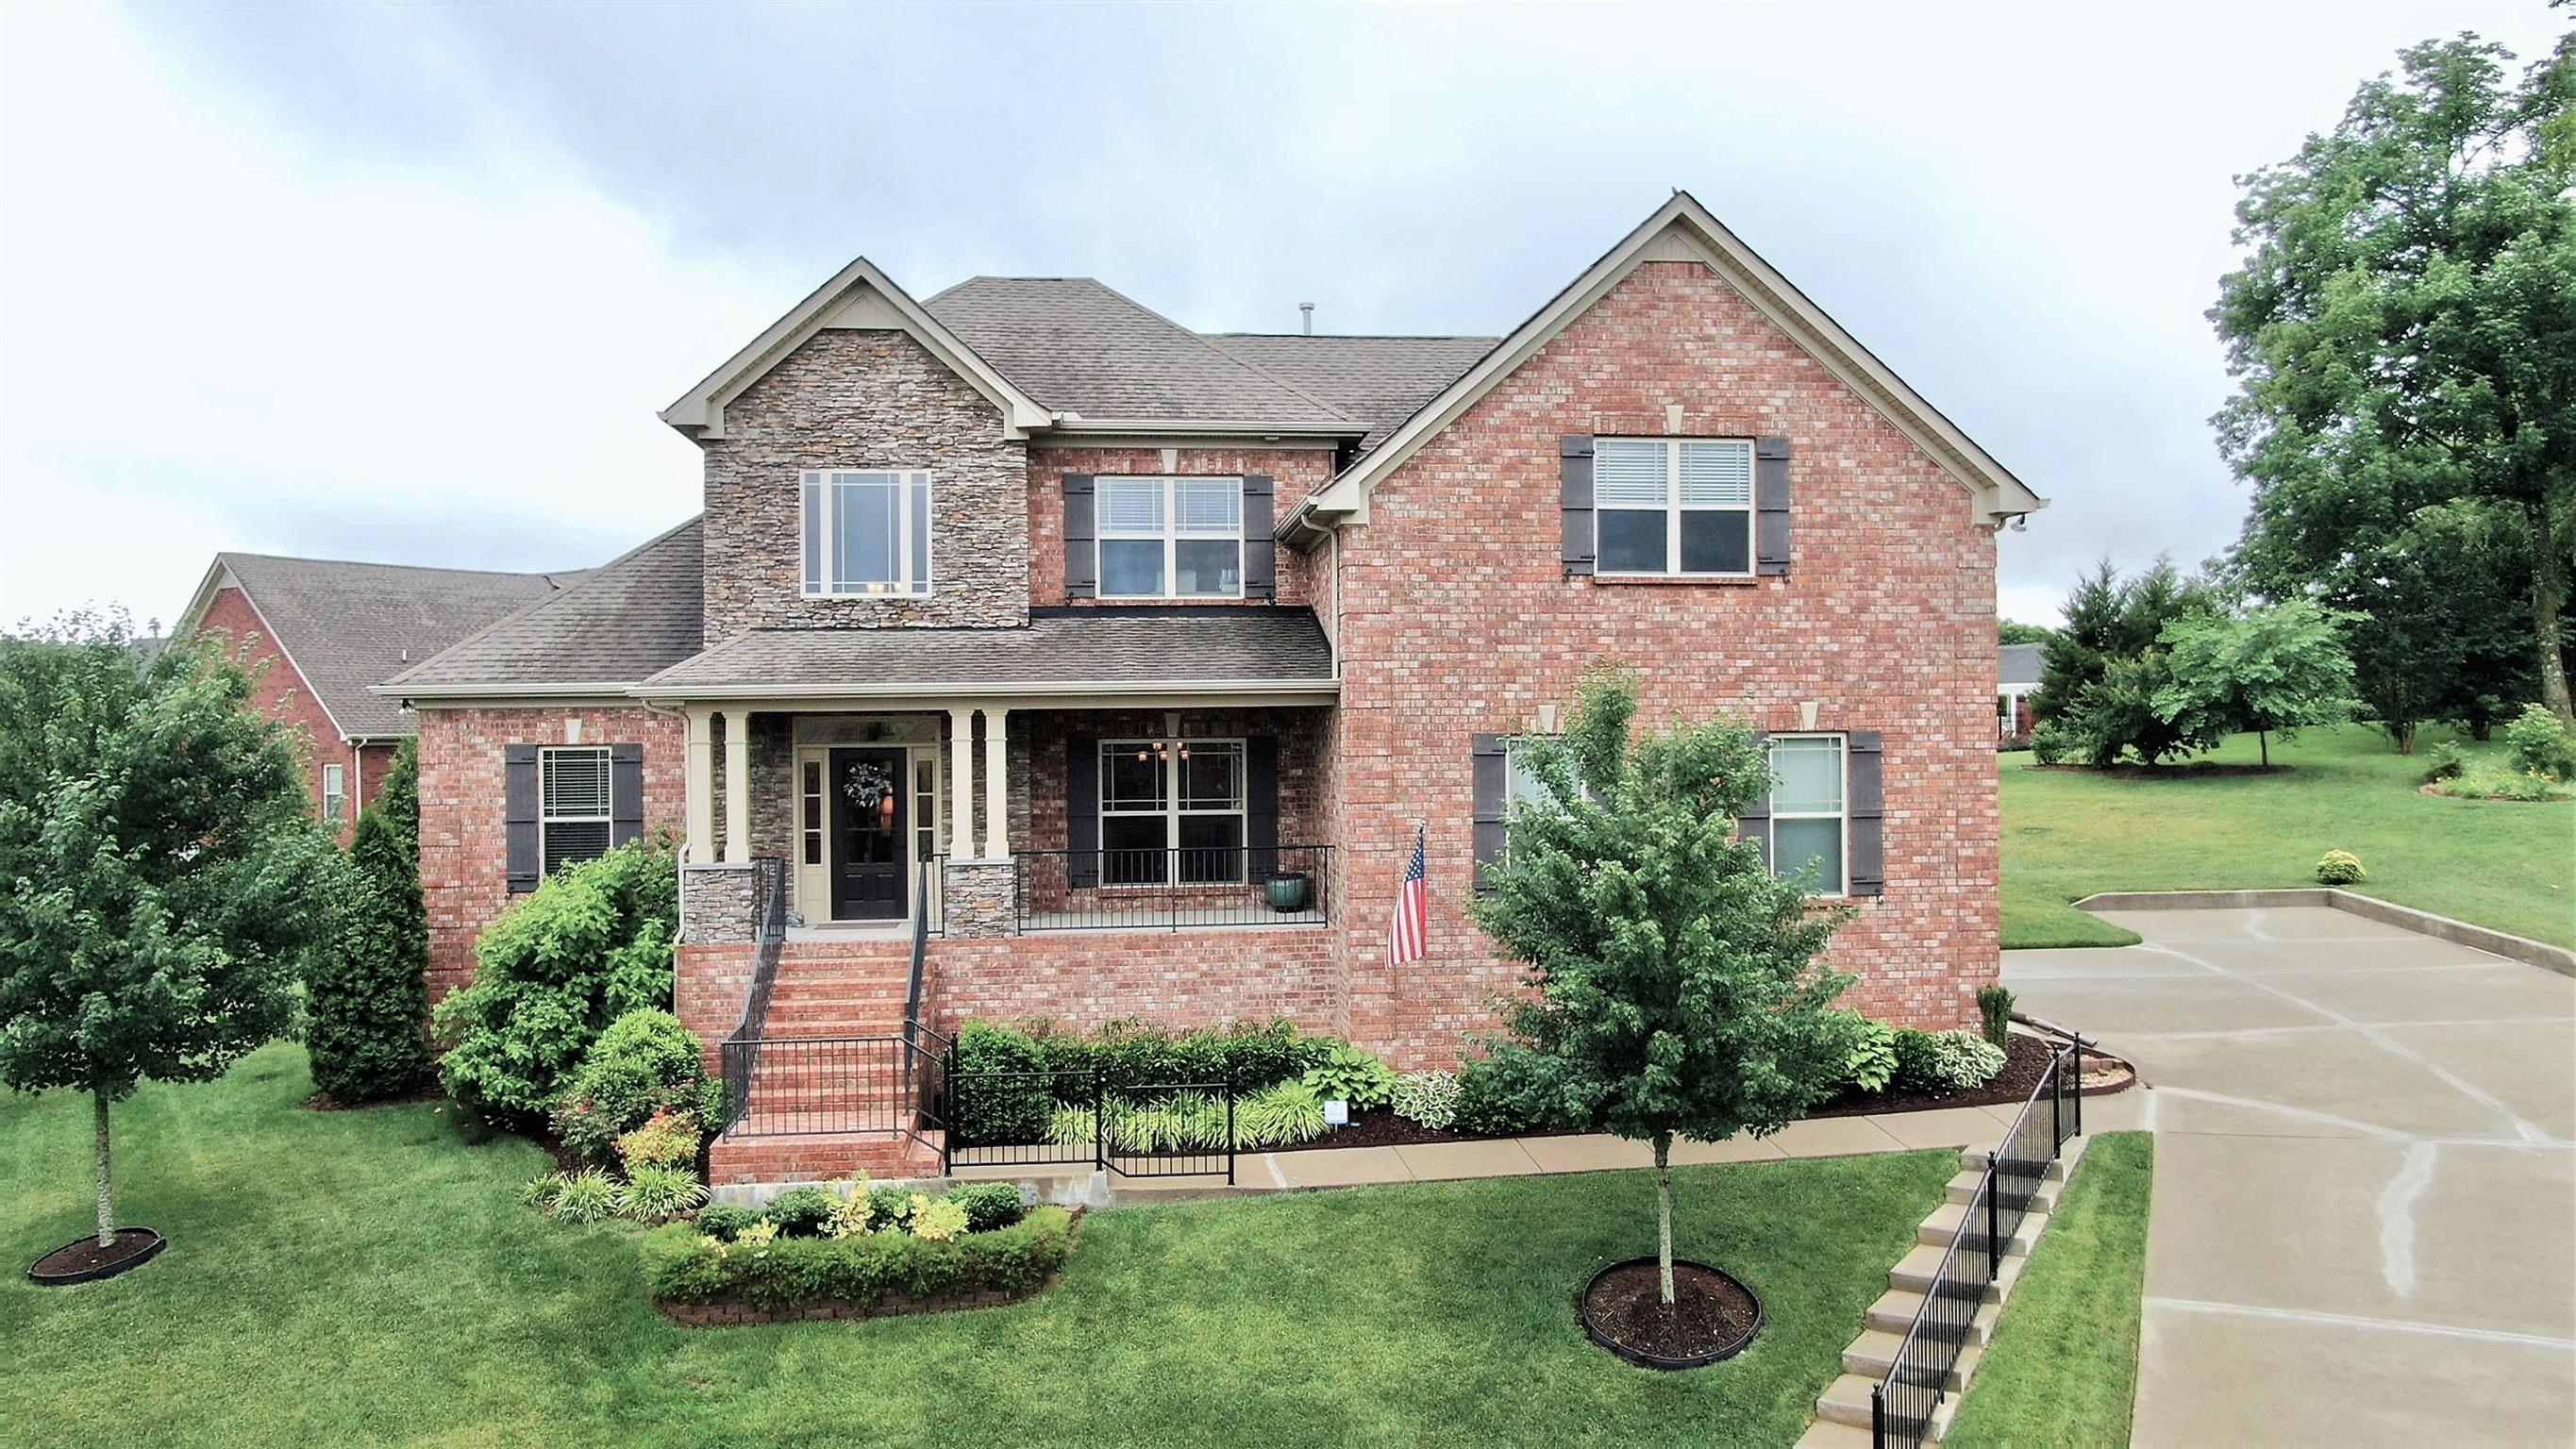 813 Fanning Ct 37066 - One of Gallatin Homes for Sale